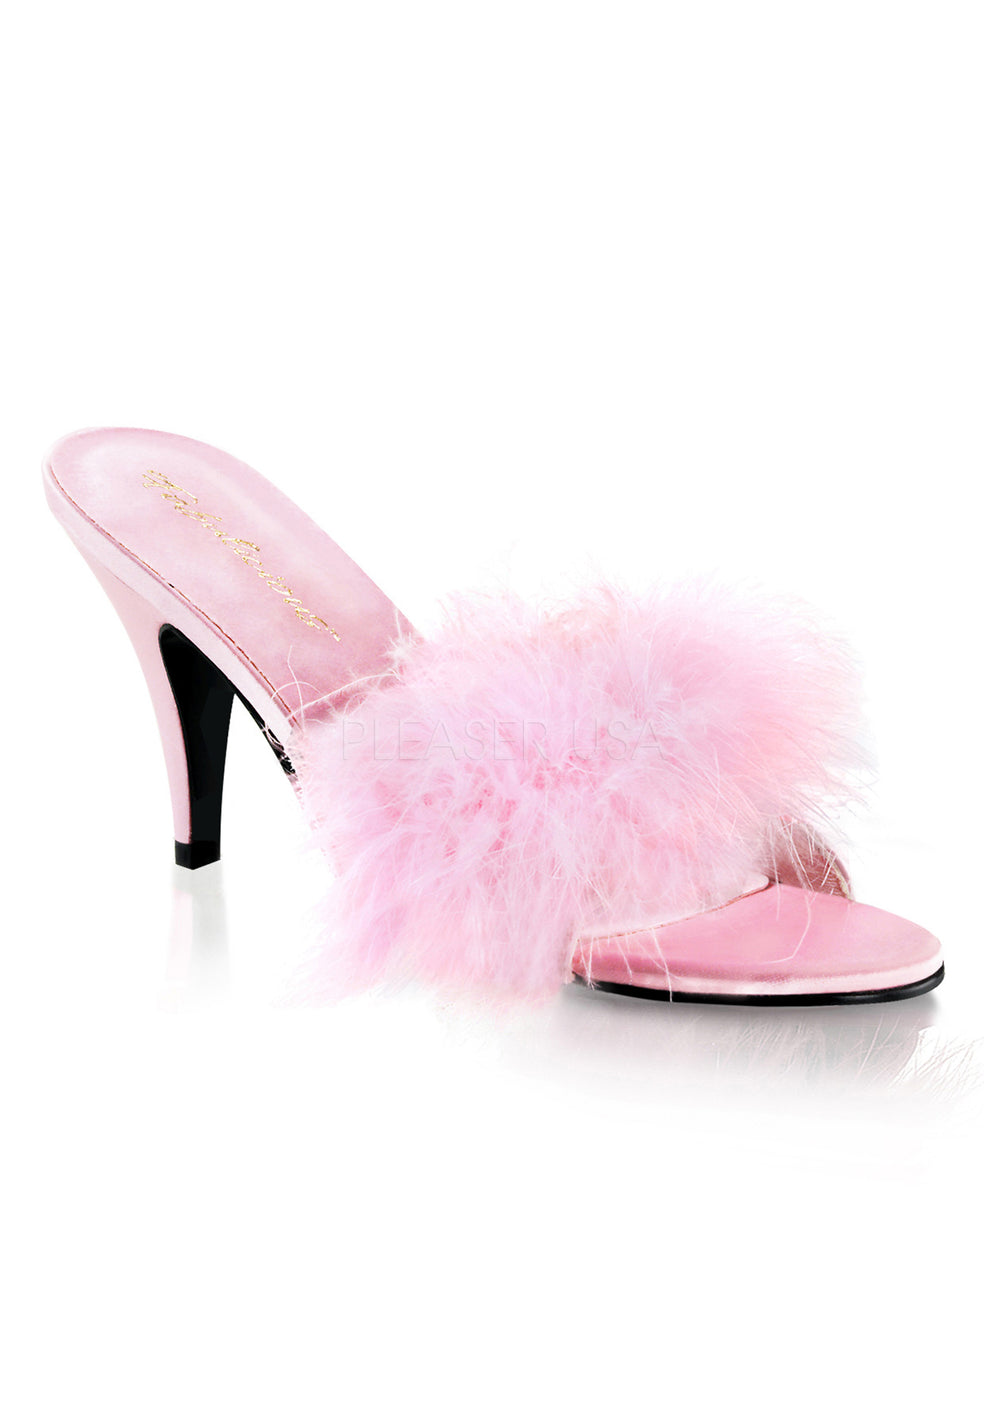 L'amour Marabou Feather Open Sandal